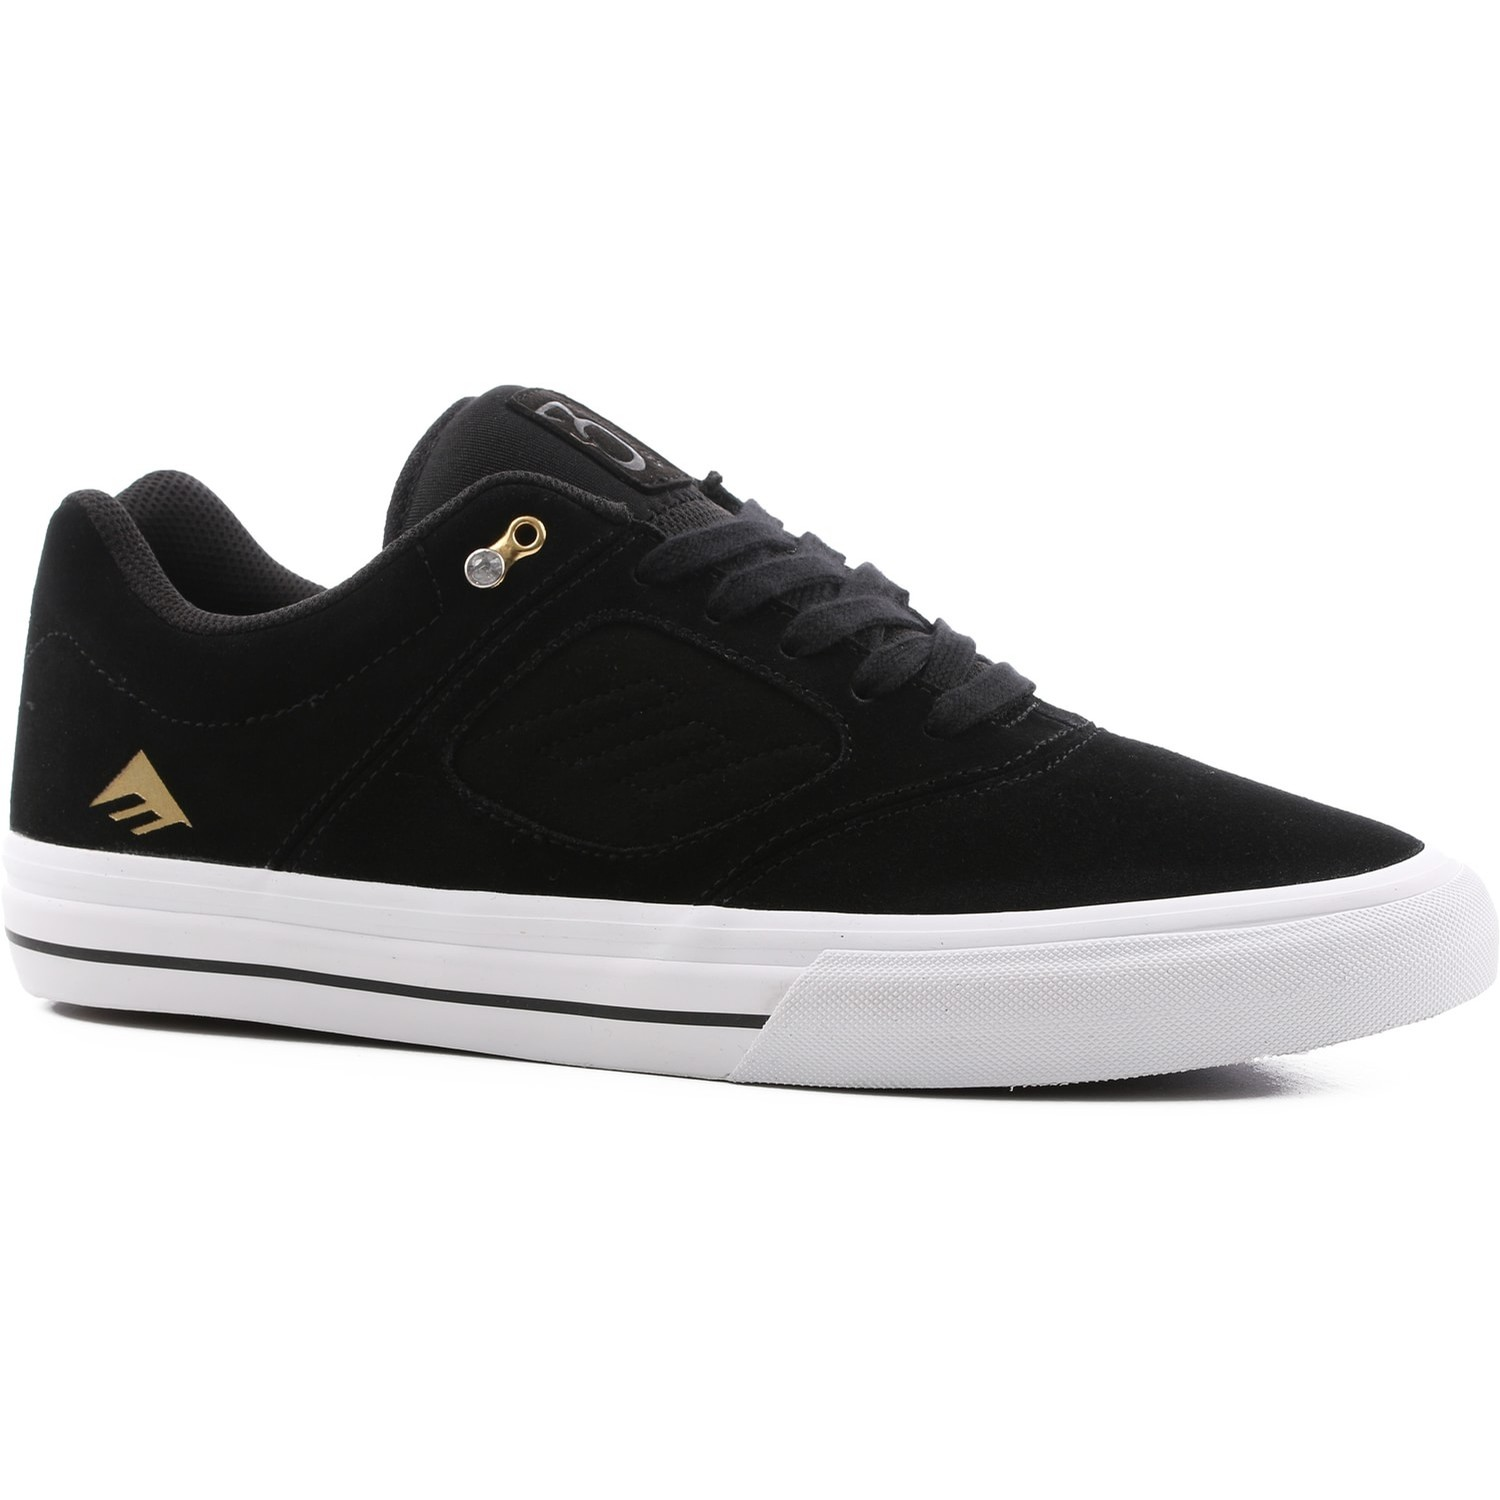 Reynolds 3 G6 Vulc (Black/White/Gold)